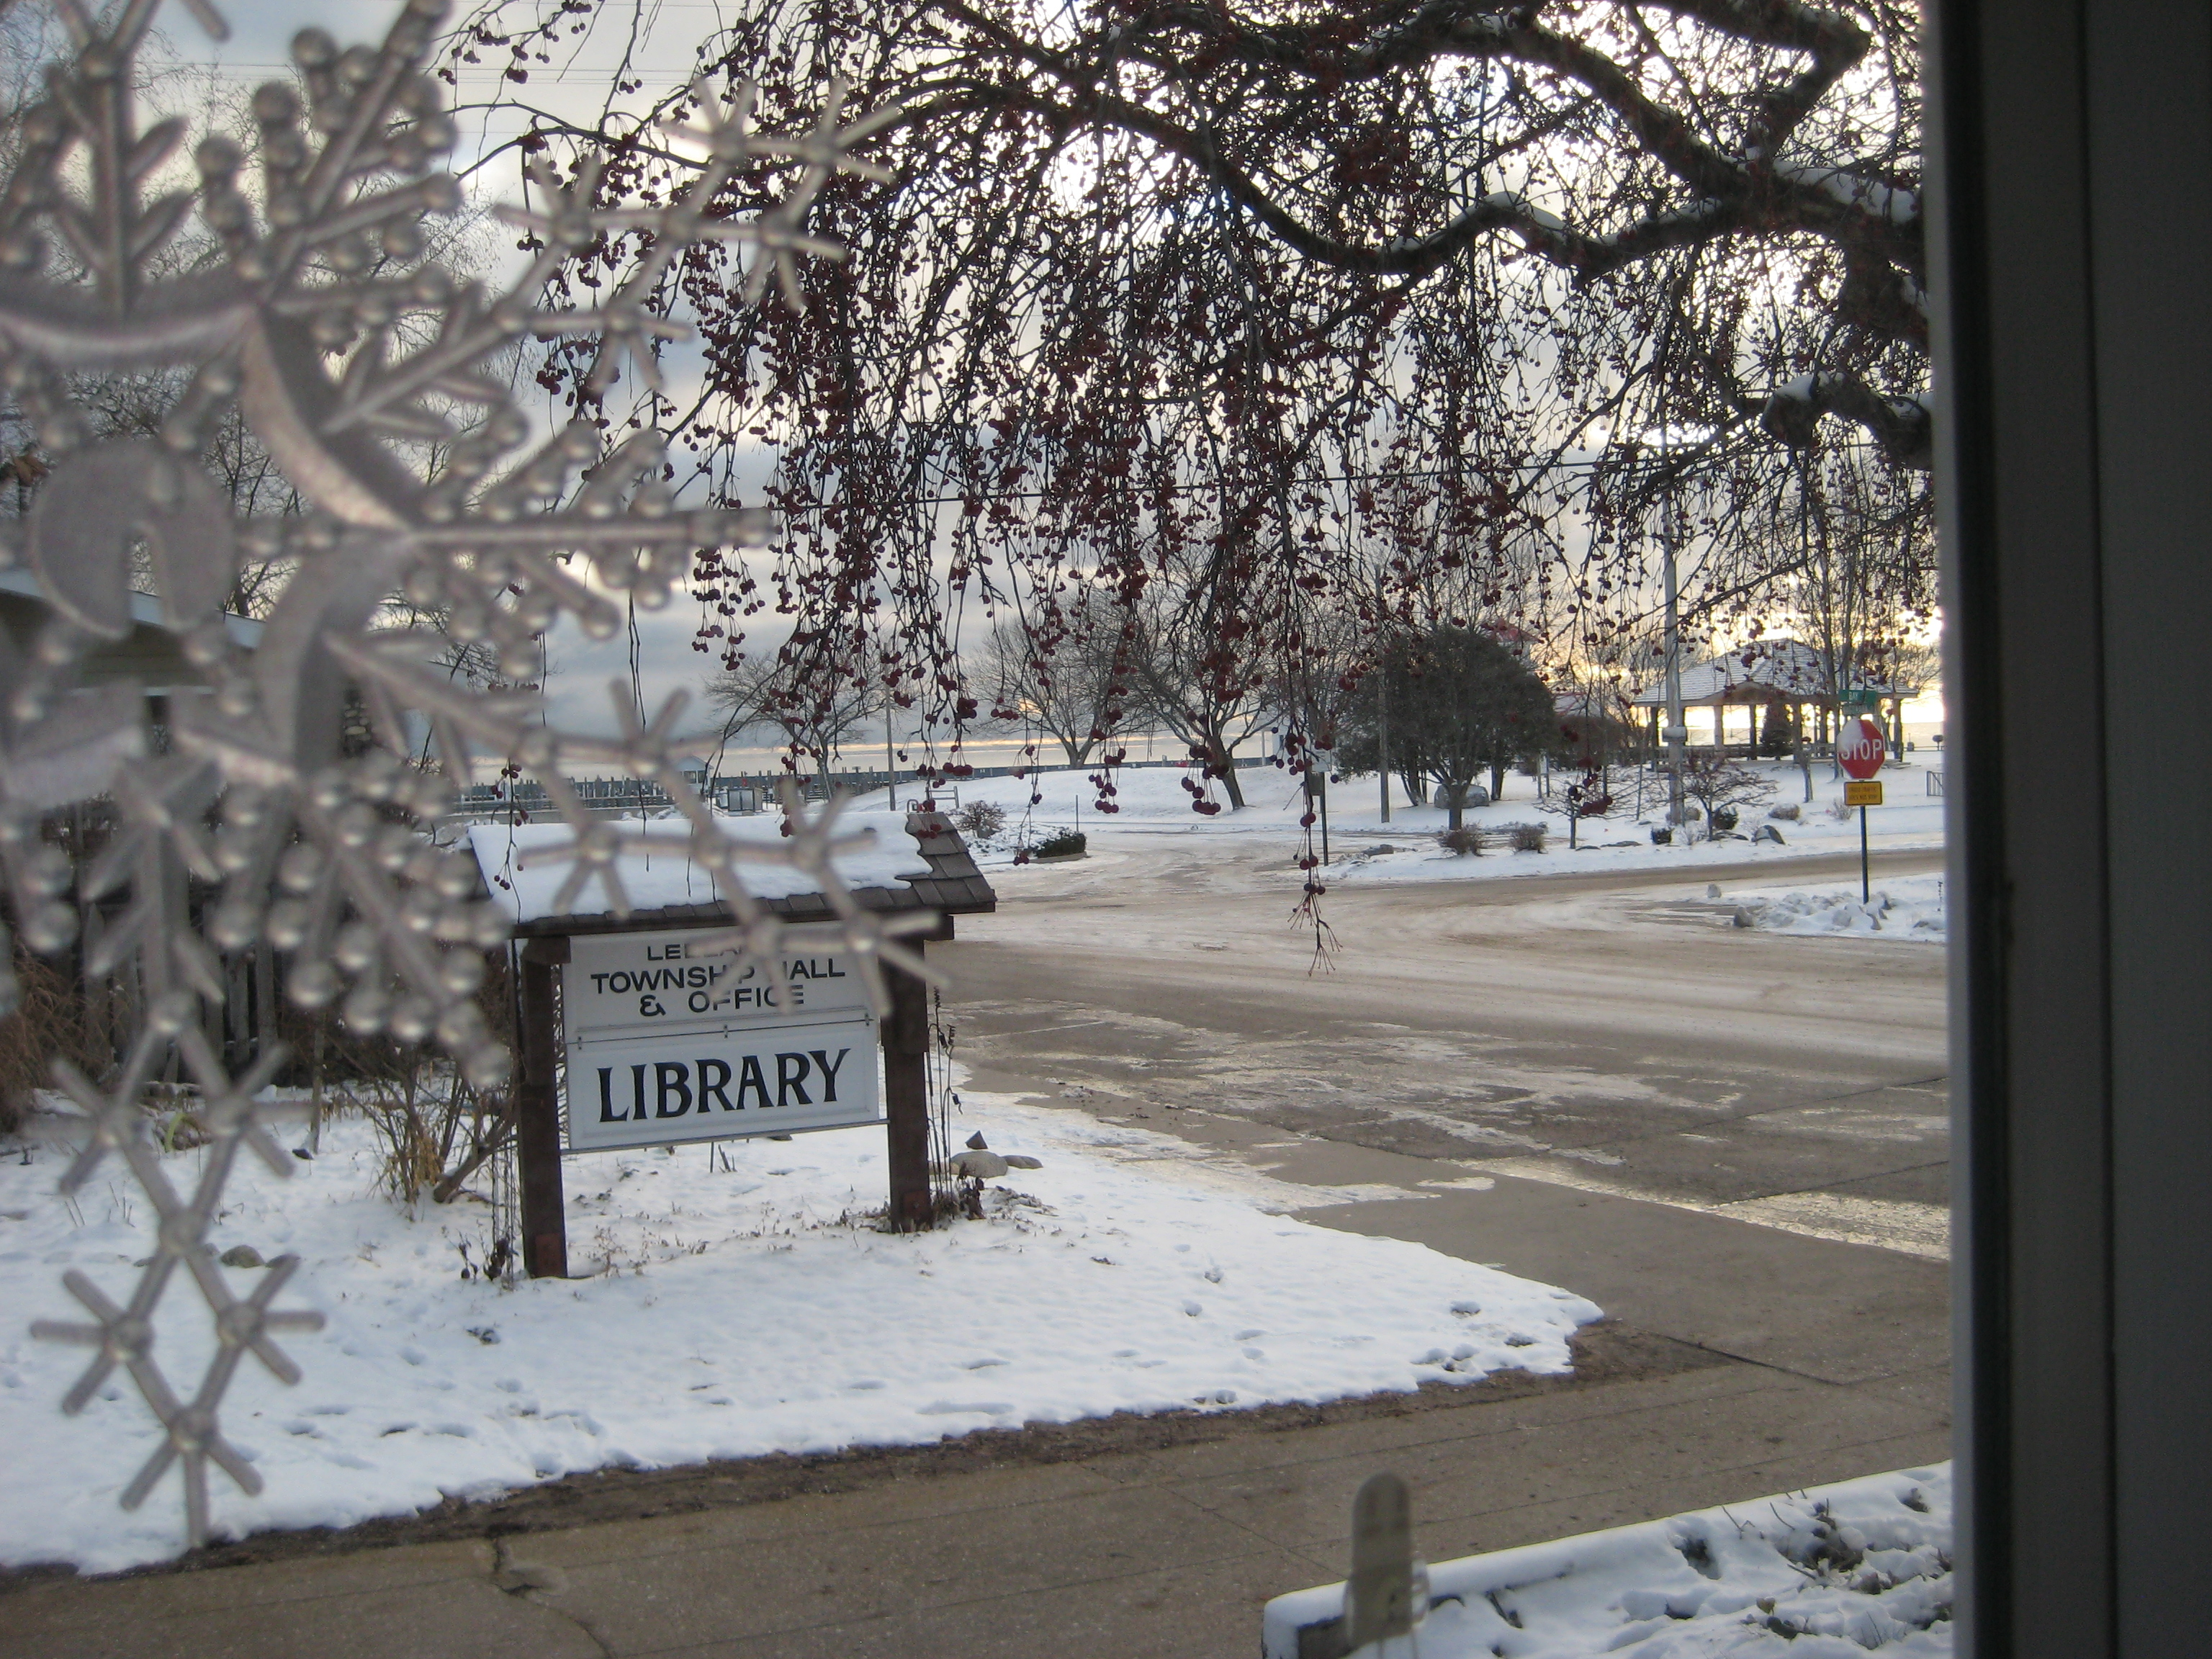 Icy Winter morning at the library